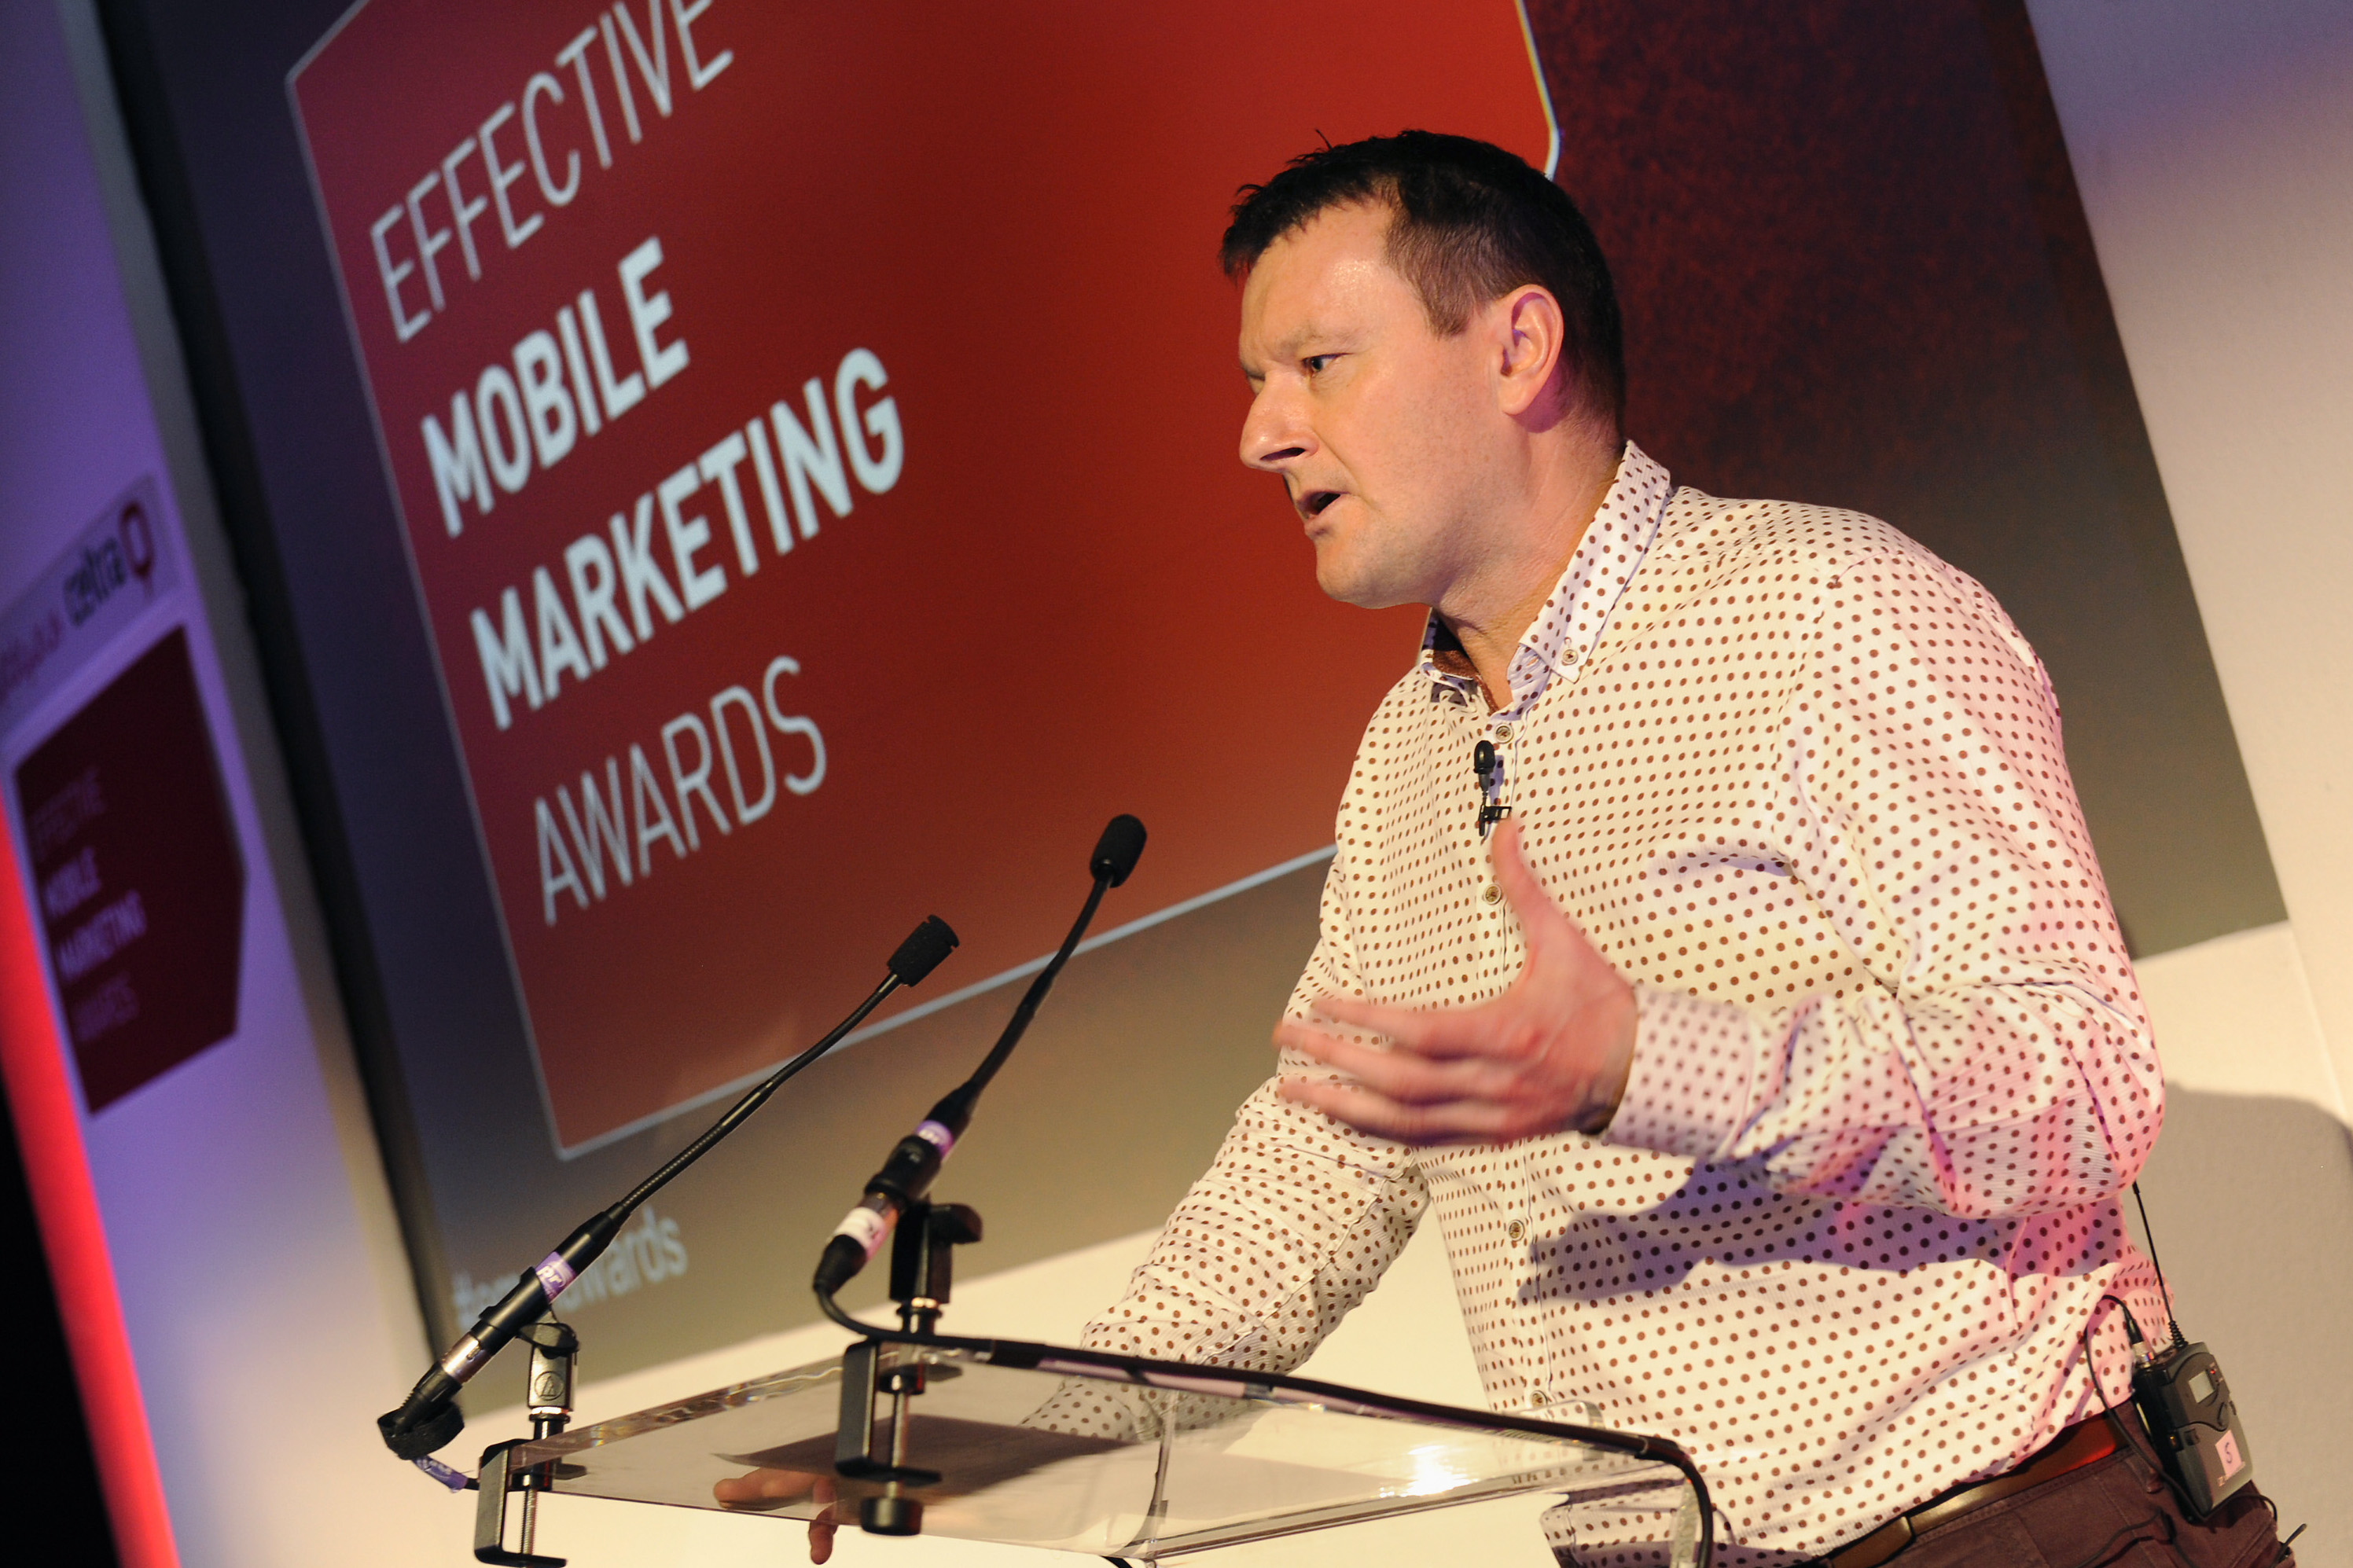 Awards Preview - Most Effective Mobile-first Service